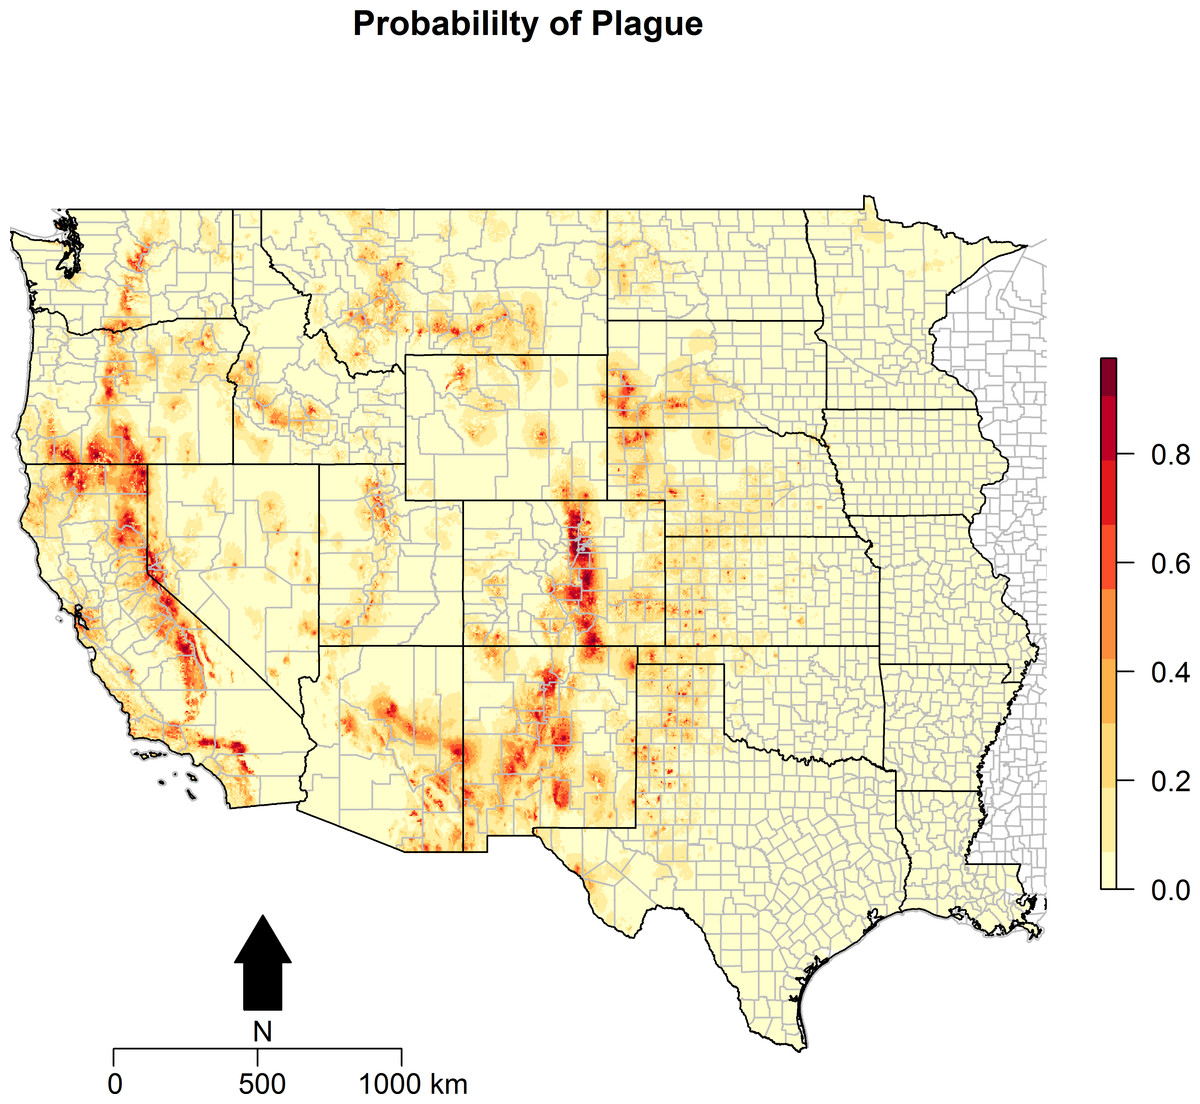 Modeling the ecologic niche of plague in sylvan and domestic animal